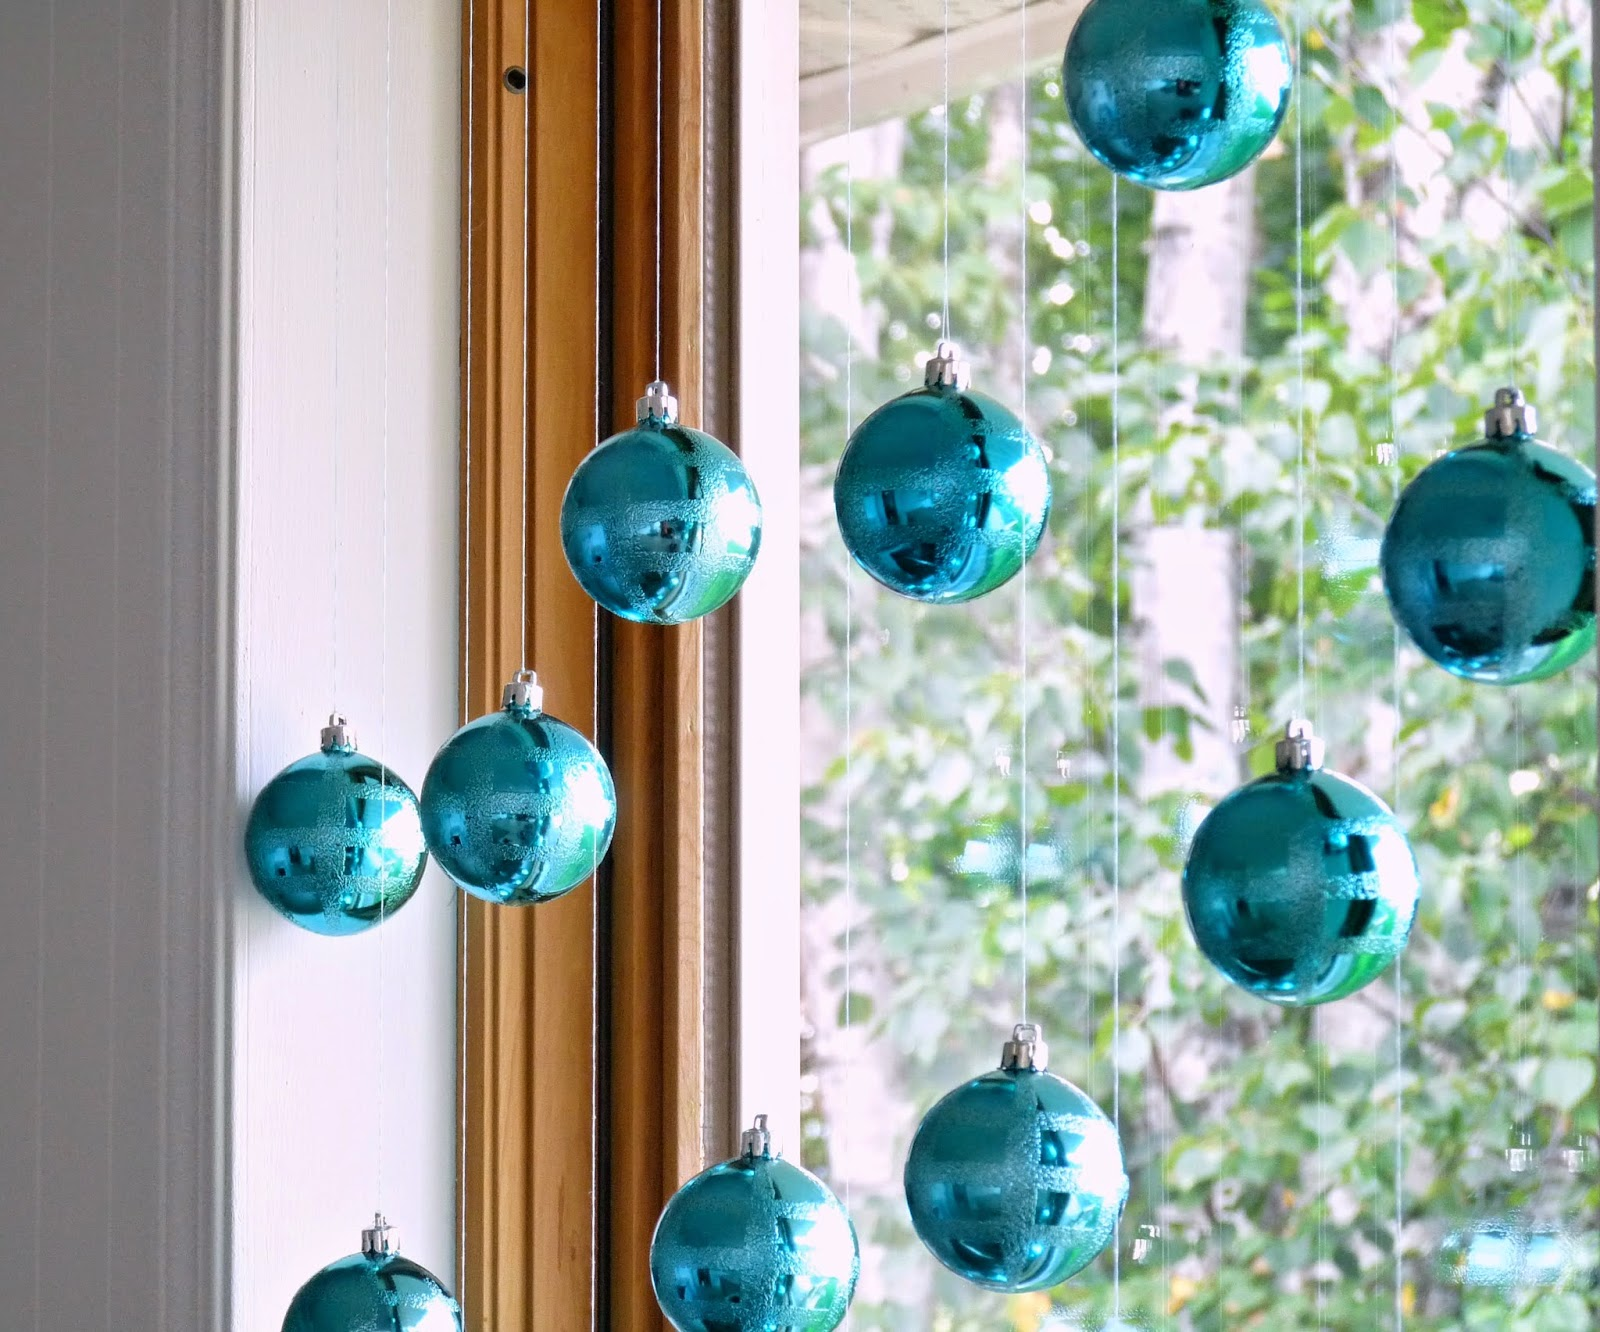 How to Hang Christmas Ornaments in a Window